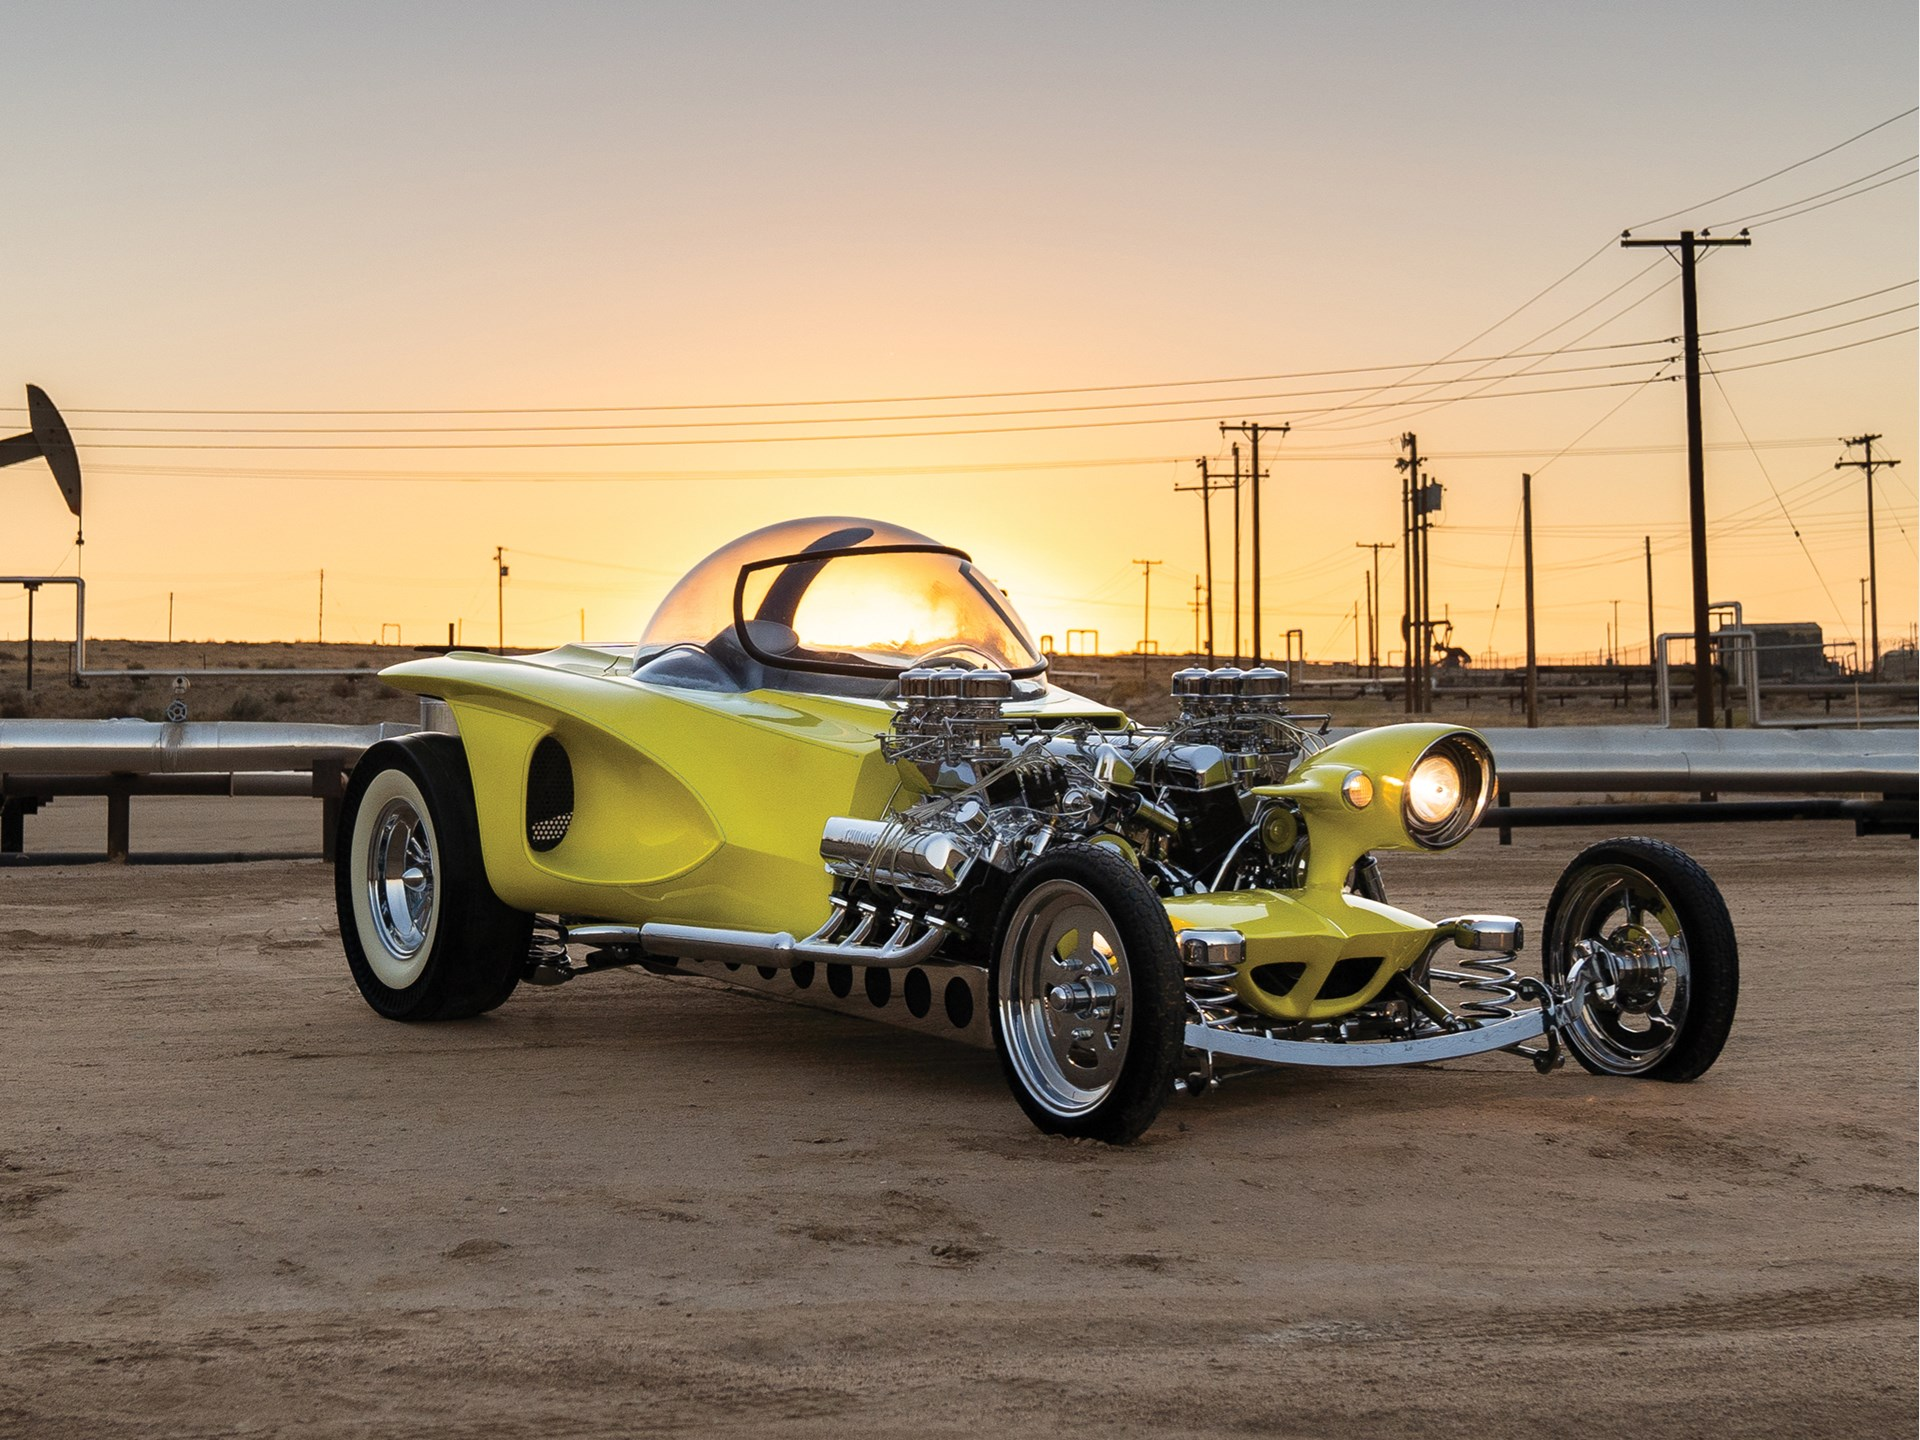 Ed Roth's twin-engine Mysterion is gone, so one superfan built his own thumbnail